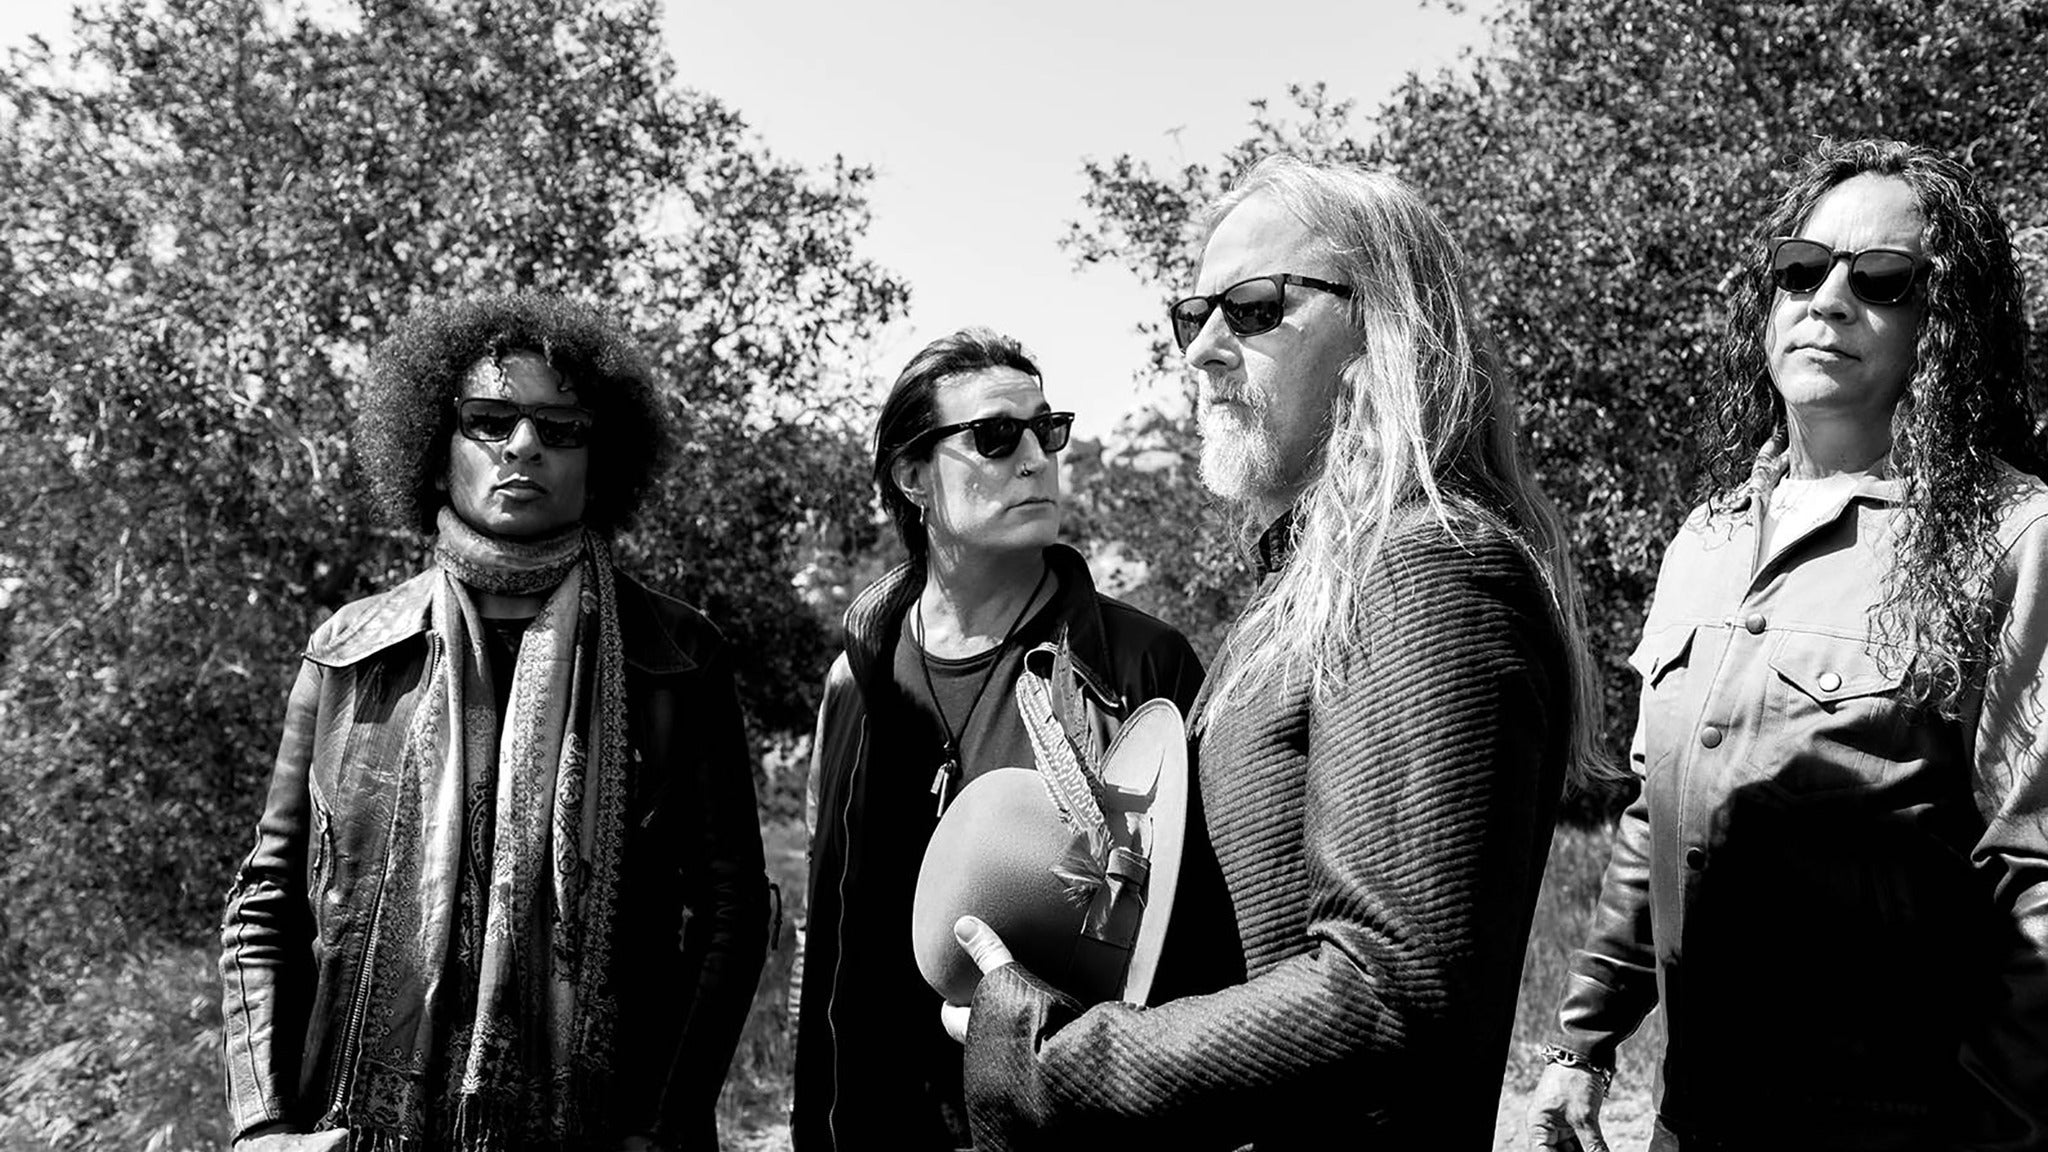 ALICE IN CHAINS W/ BUSH * THE CULT * STONE TEMPLE PILOTS